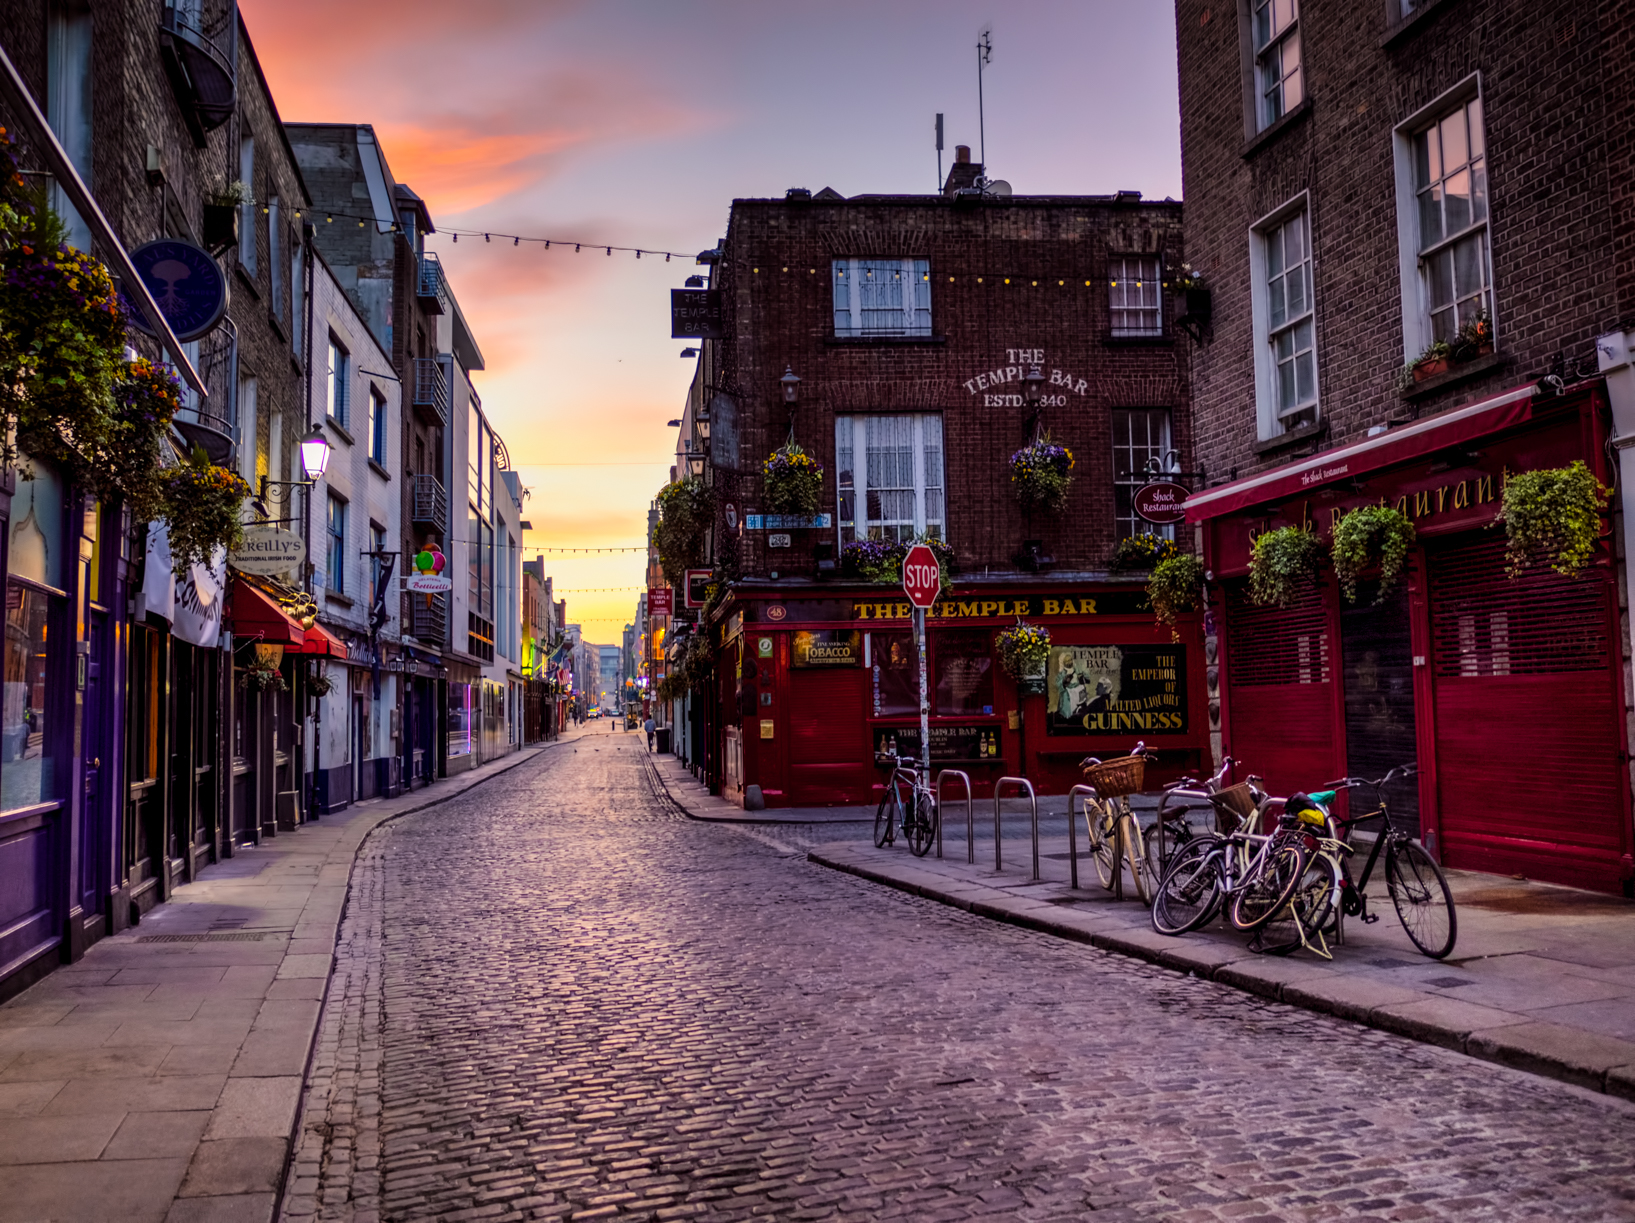 the temple bar is both that bar on the corner, and the name of the district it sits in - and it's usually super crowded. But at sunrise it's empty!